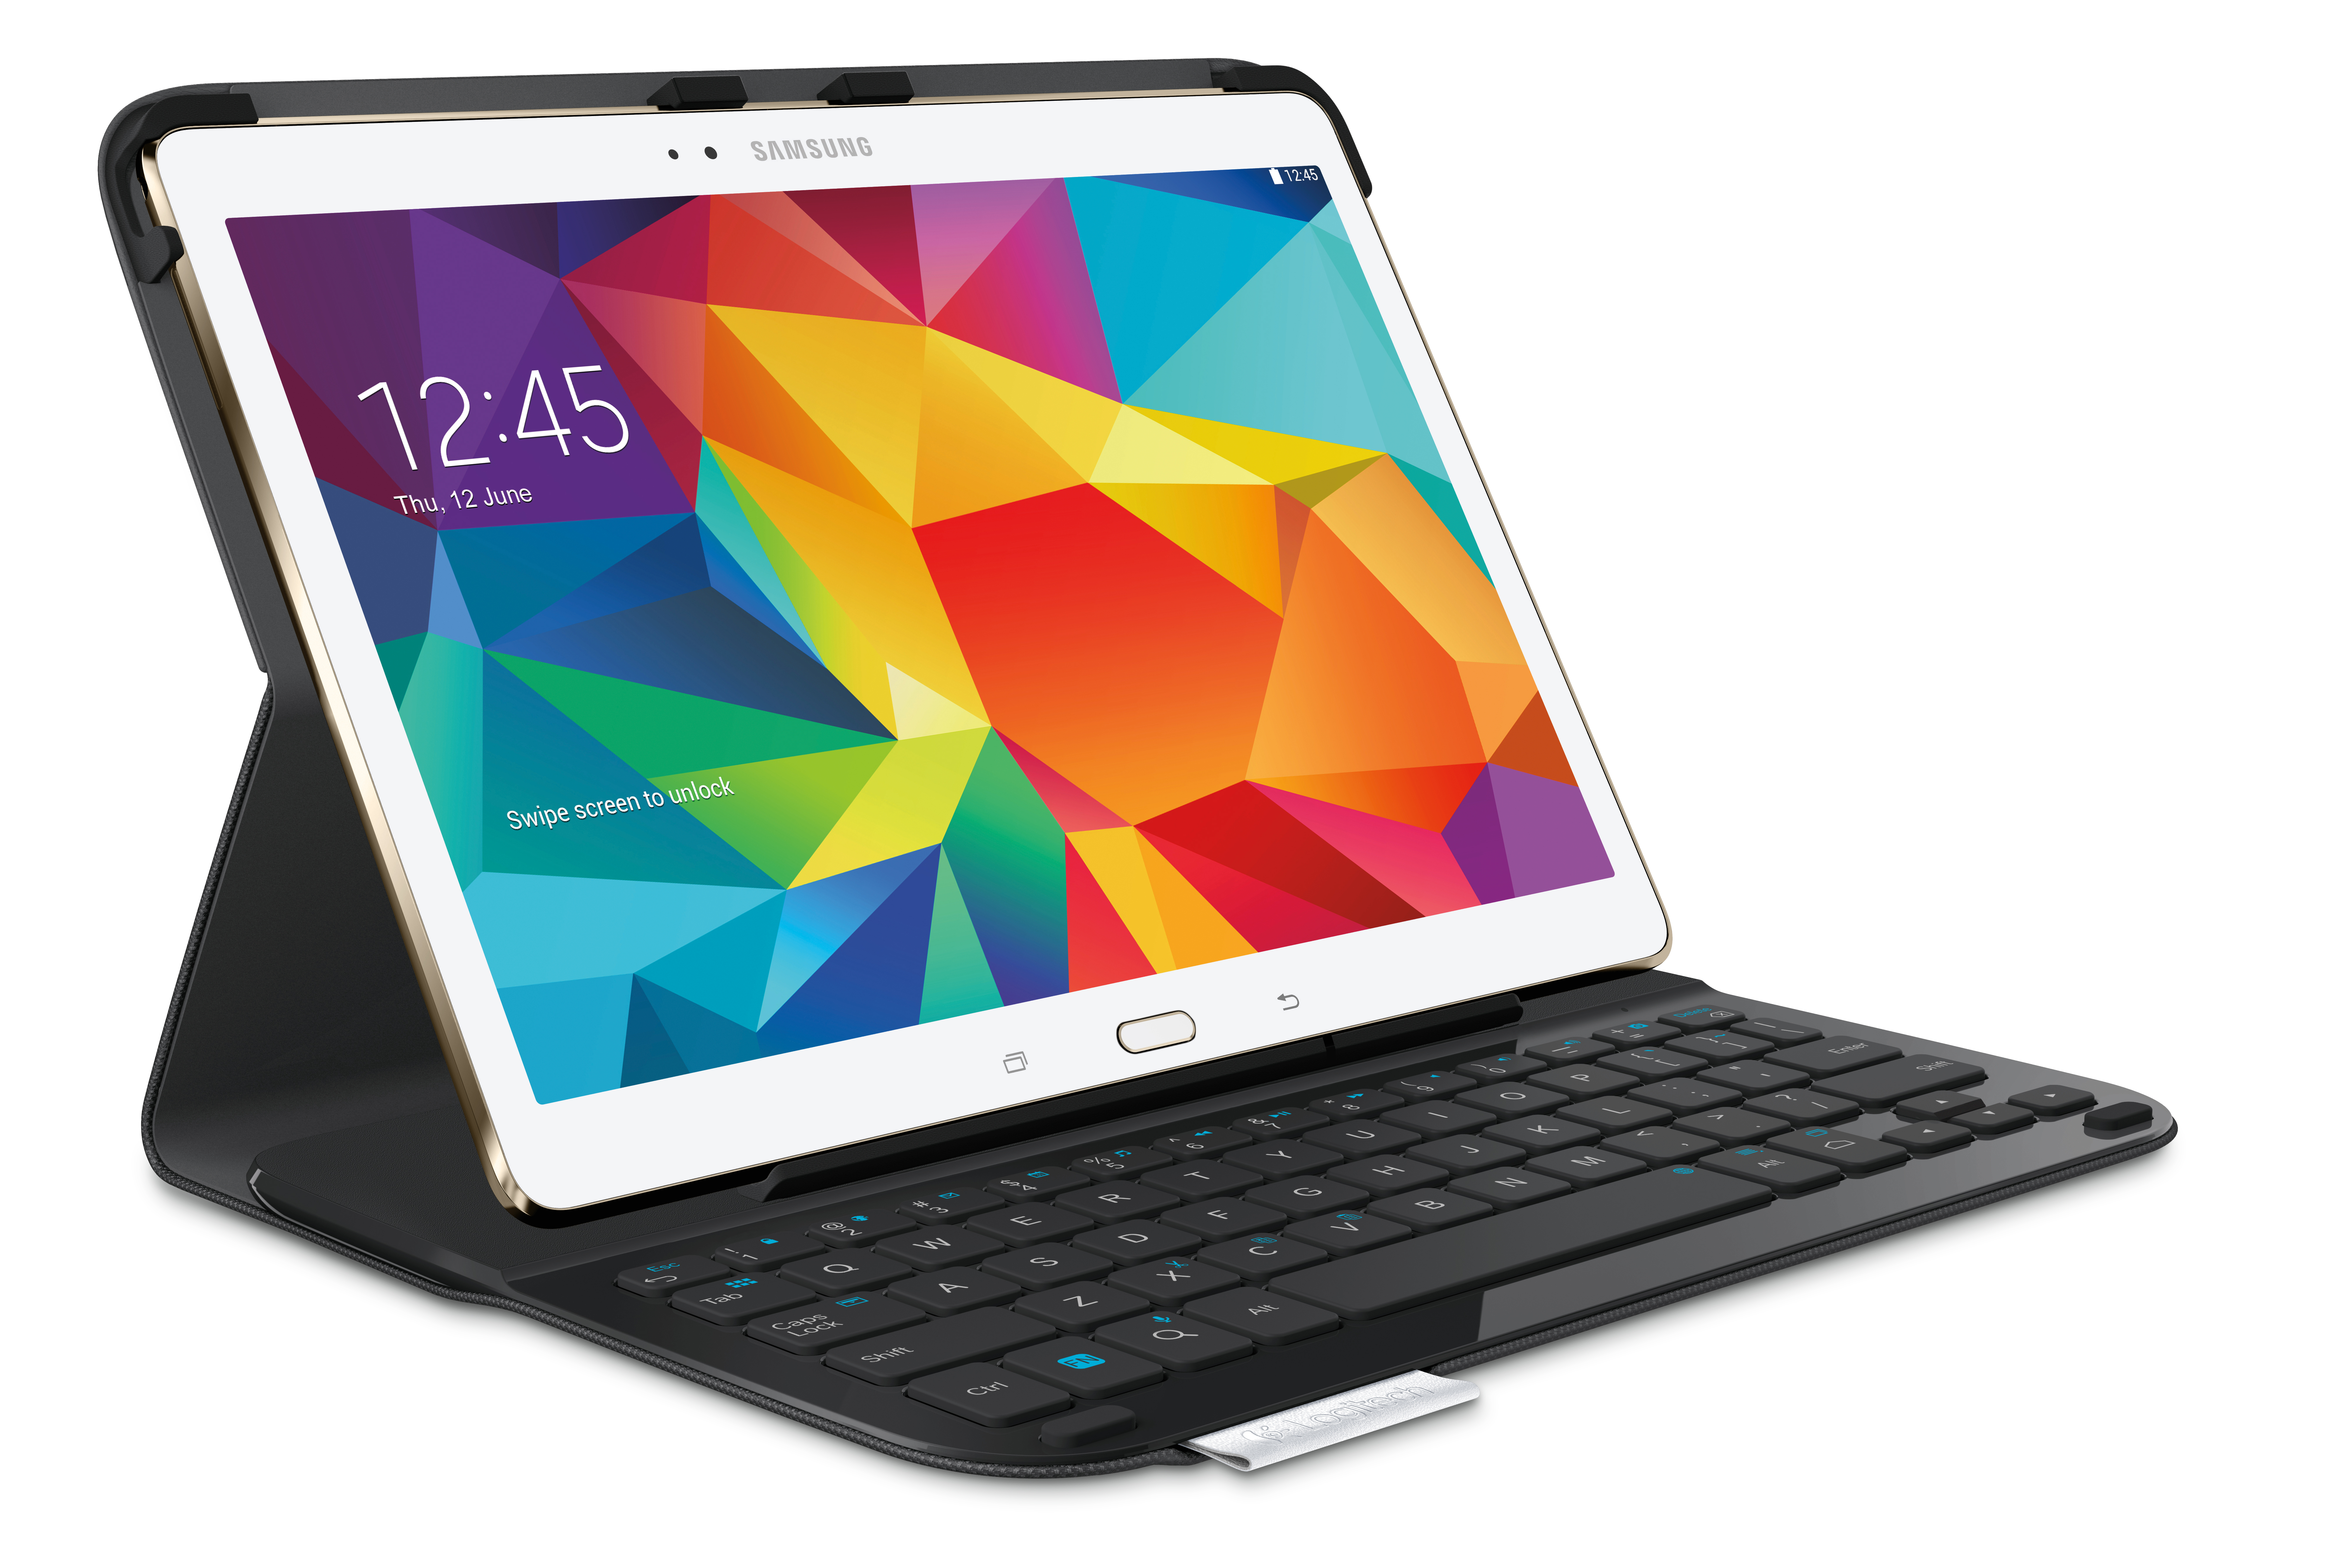 The Logitech Type-S is a thin and light protective keyboard case for your Samsung Galaxy Tab S 10.5-inch. The Logitech Type-S features a built-in Bluetooth enabled keyboard with well-spaced keys, Android shortcuts and versatile viewing positions, giving you added functionality and protection for your tablet. (Photo: Business Wire)